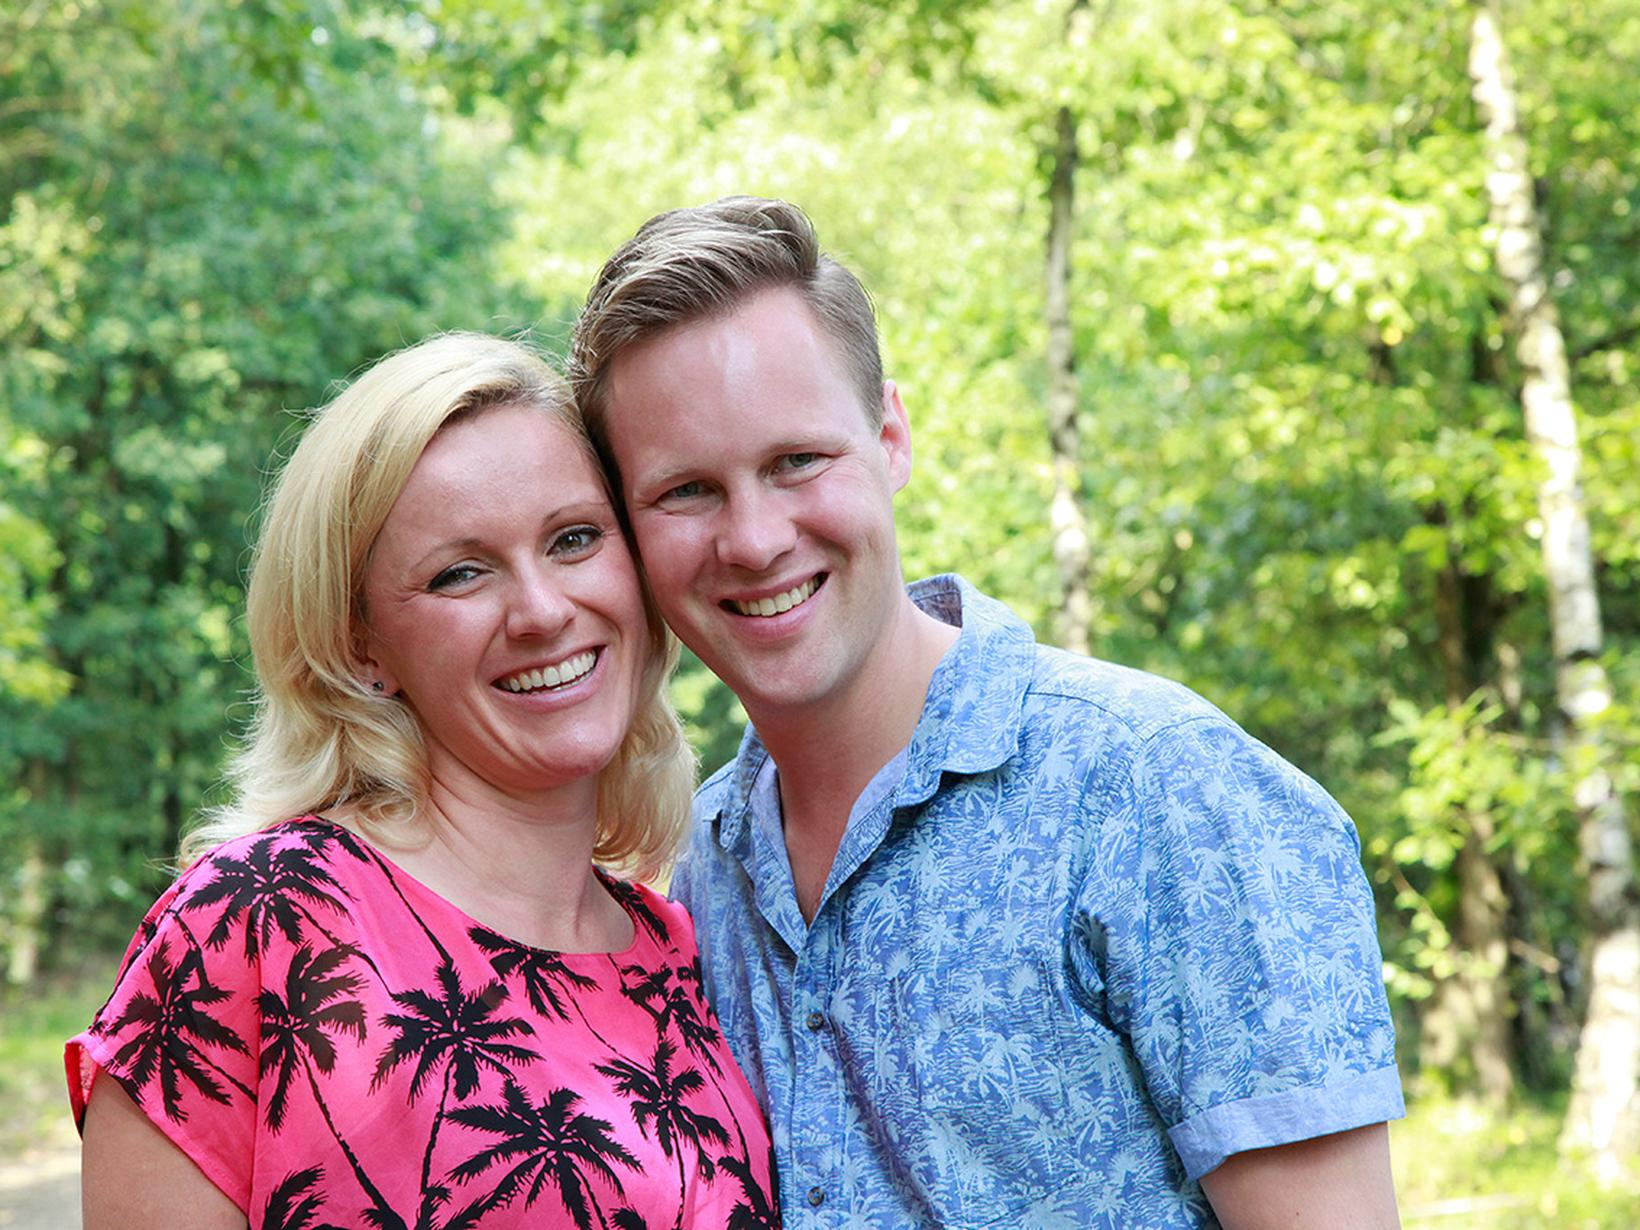 Christian & Sonja from Hannover, Germany